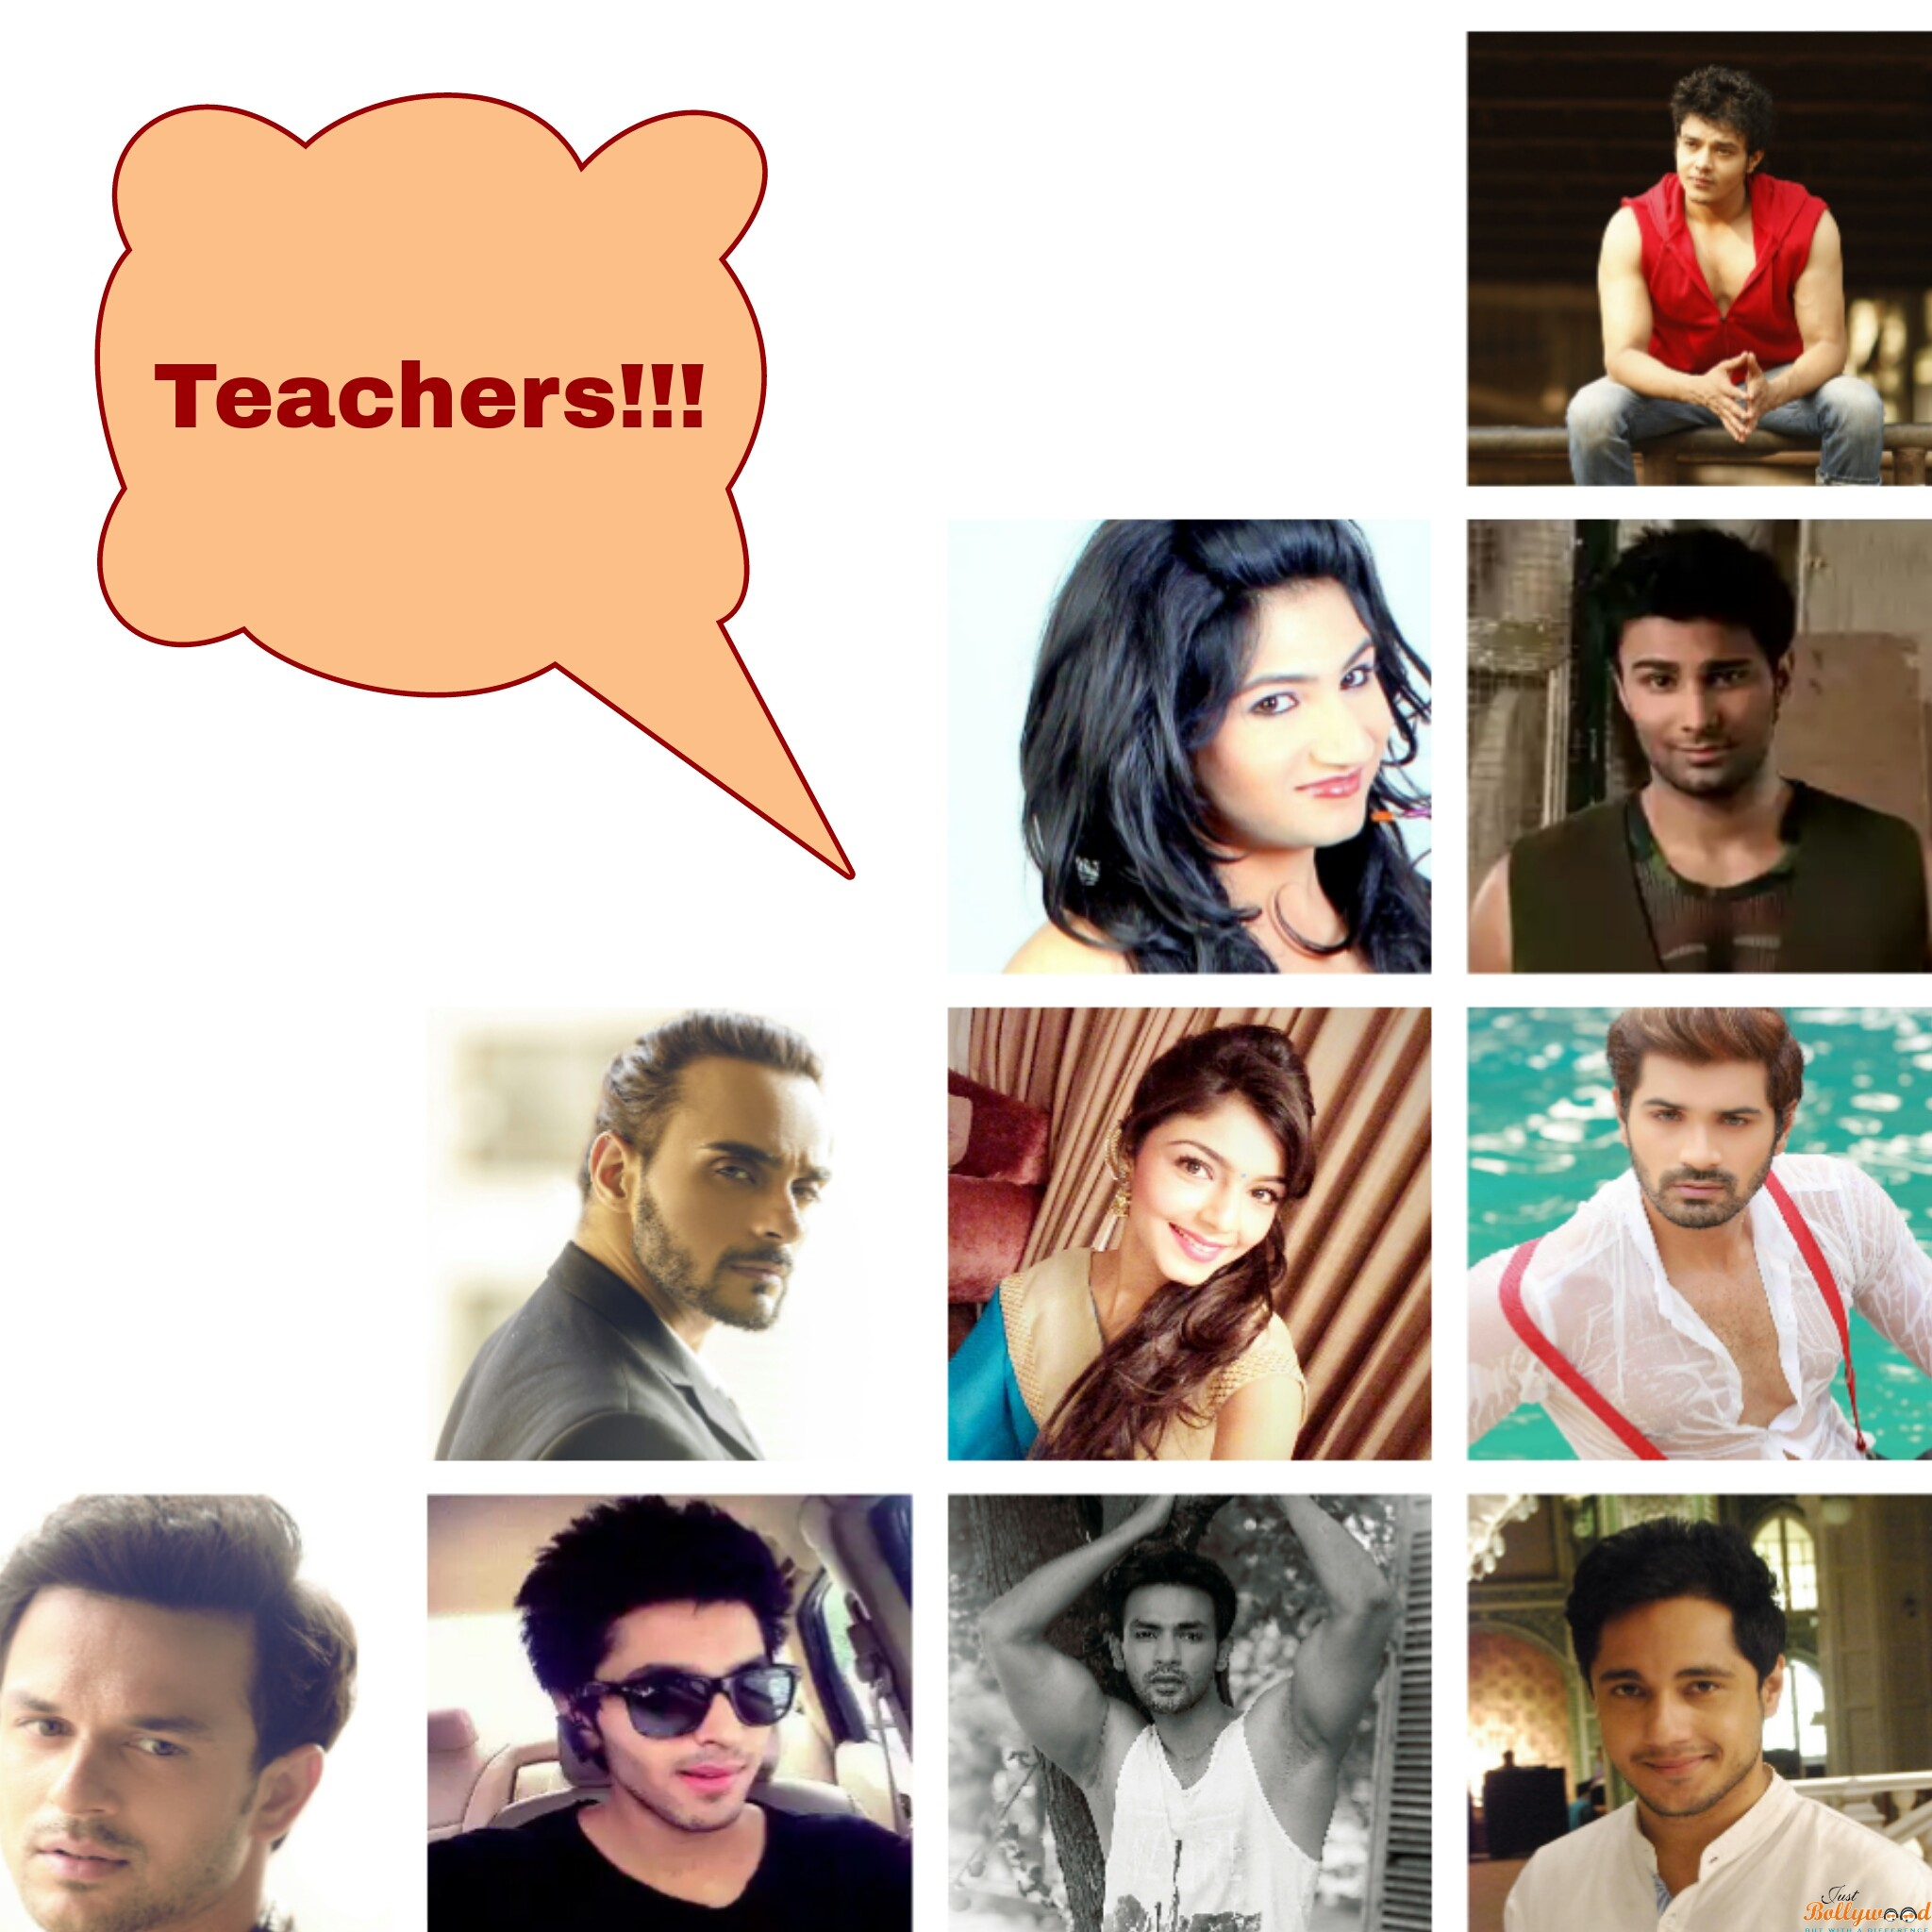 Celeb's wishes for their Teachers!